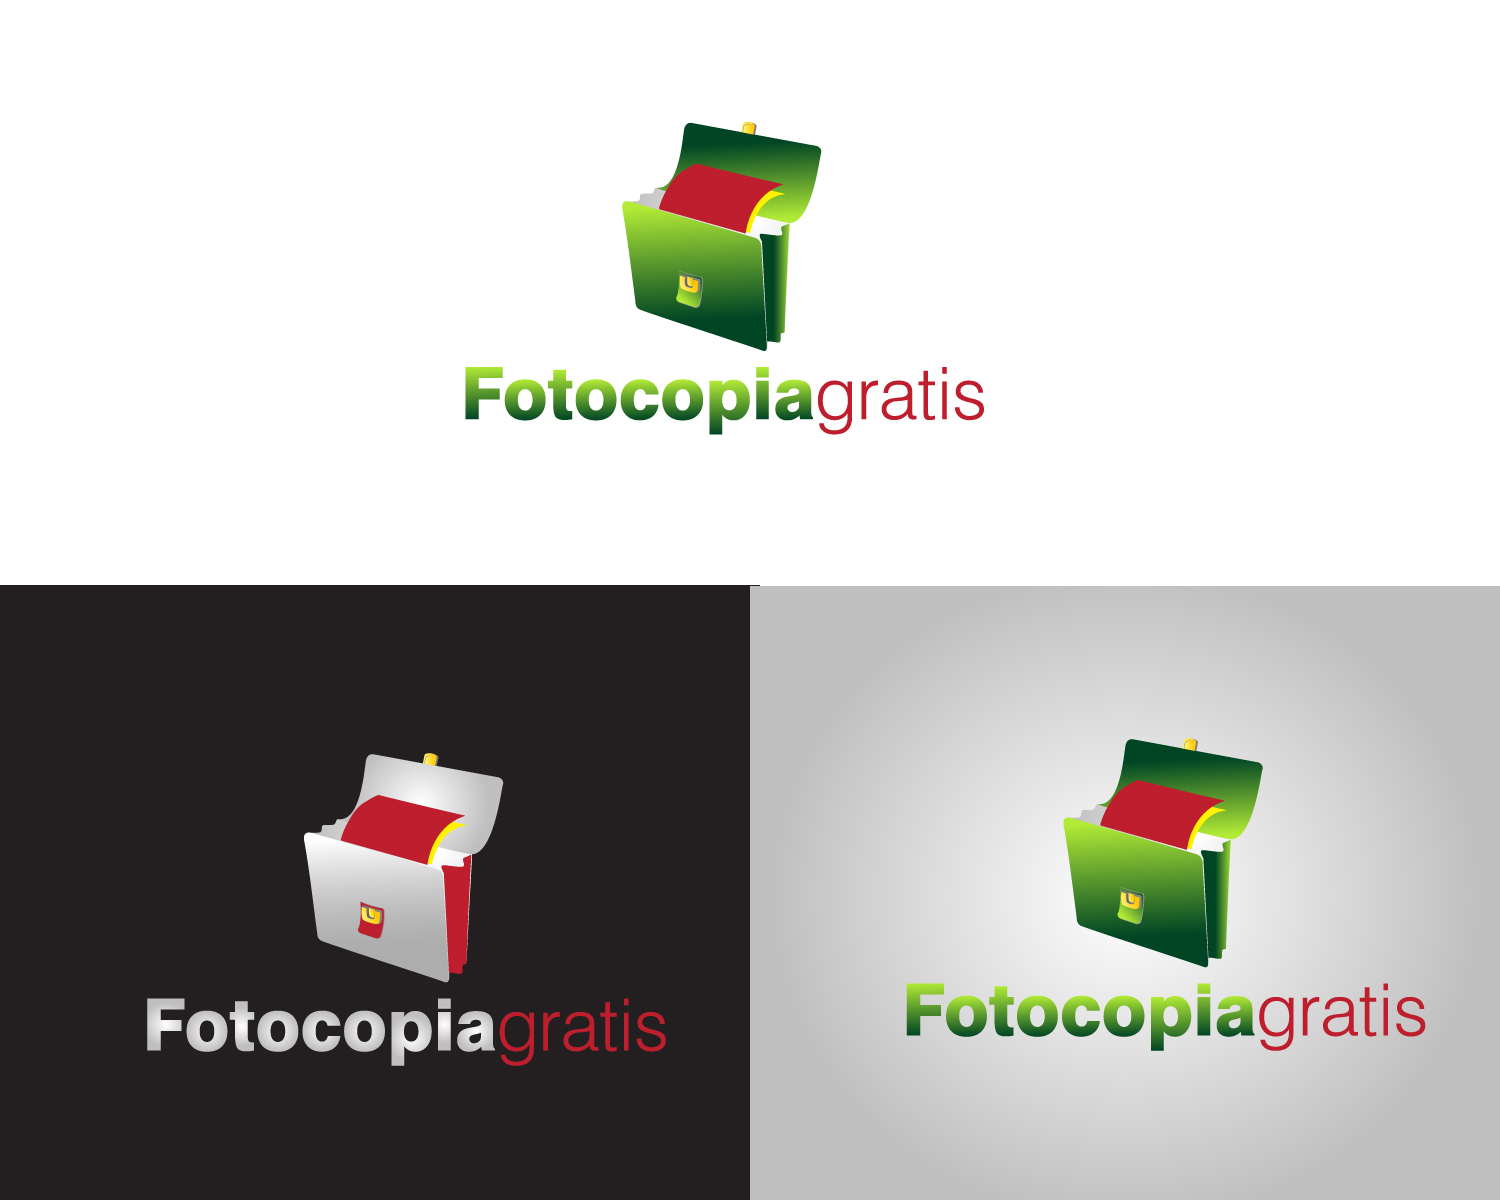 Logo Design by Jagdeep Singh - Entry No. 190 in the Logo Design Contest Inspiring Logo Design for Fotocopiagratis.